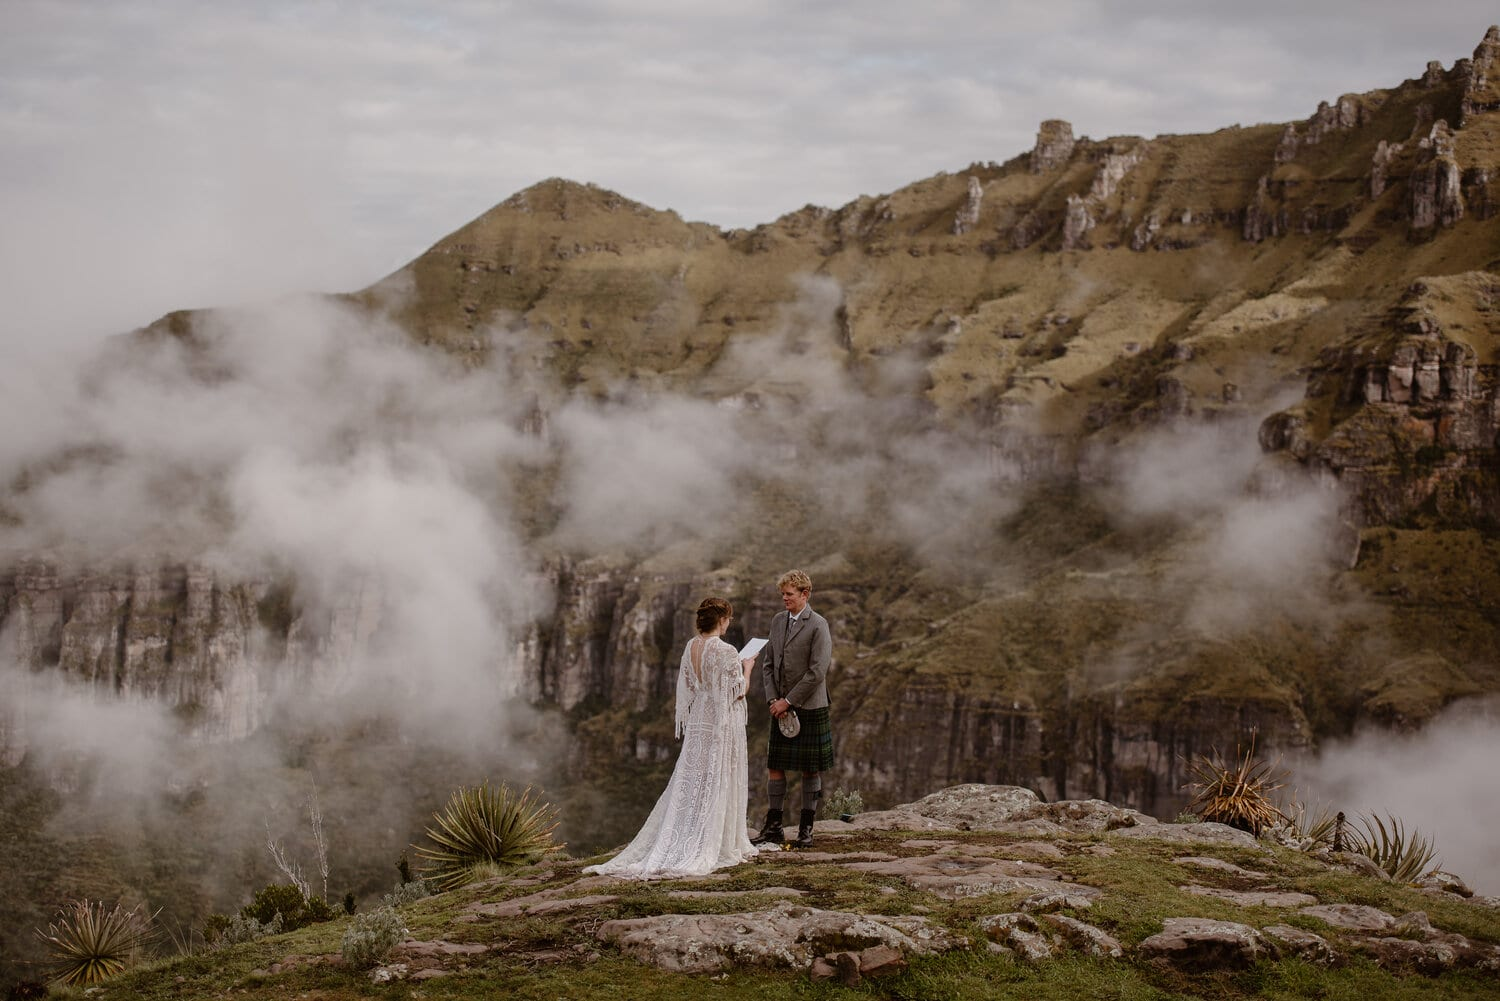 A bride and groom stand in the distance with the clouds and rocks of Peru in the background.